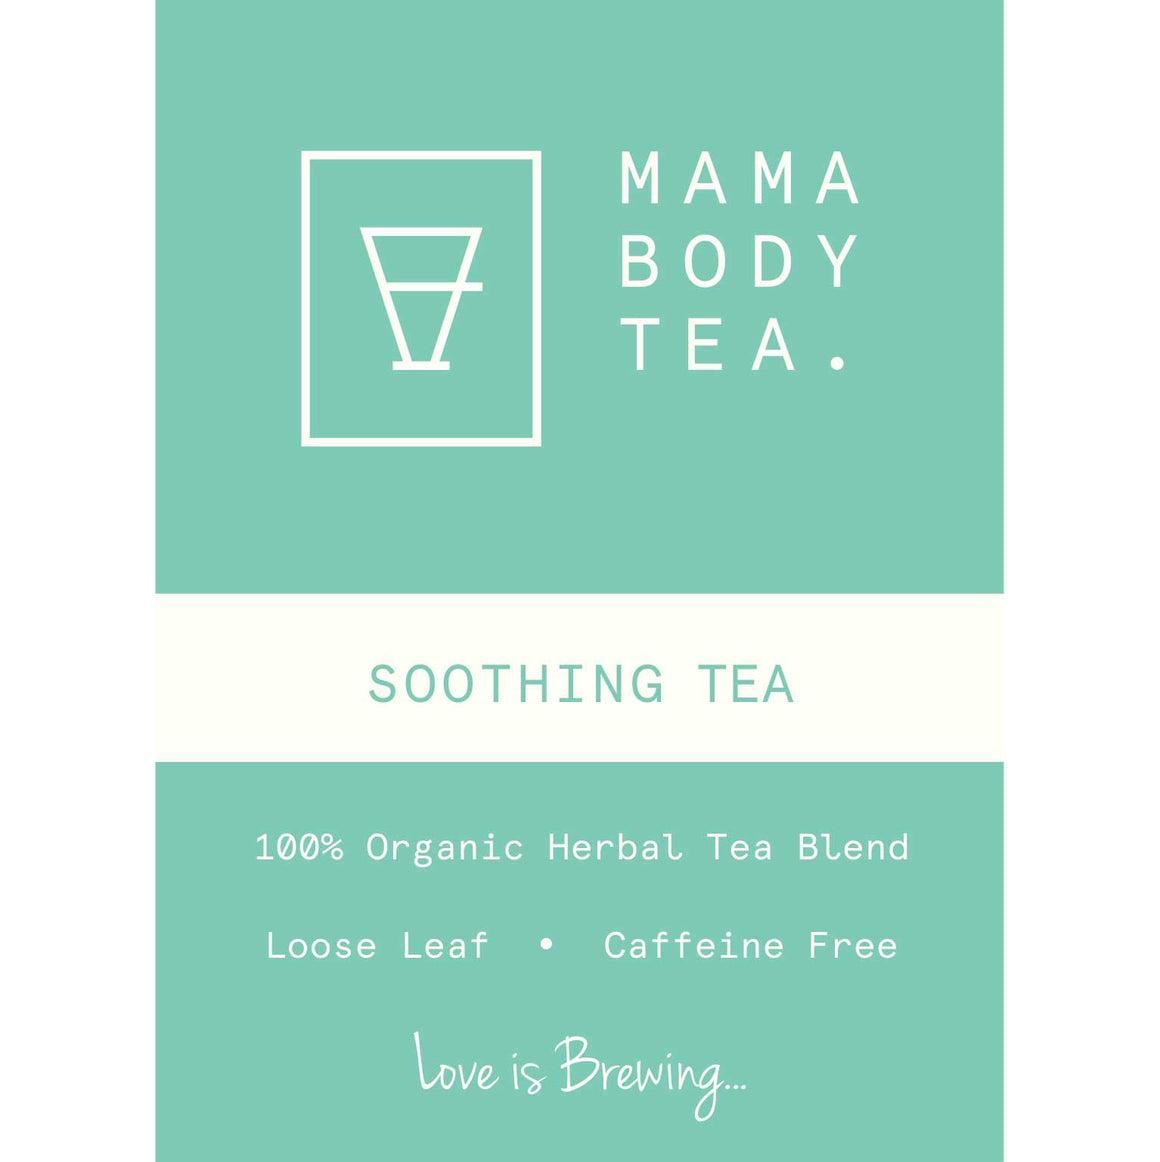 Soothing Tea by Mama Body Tea